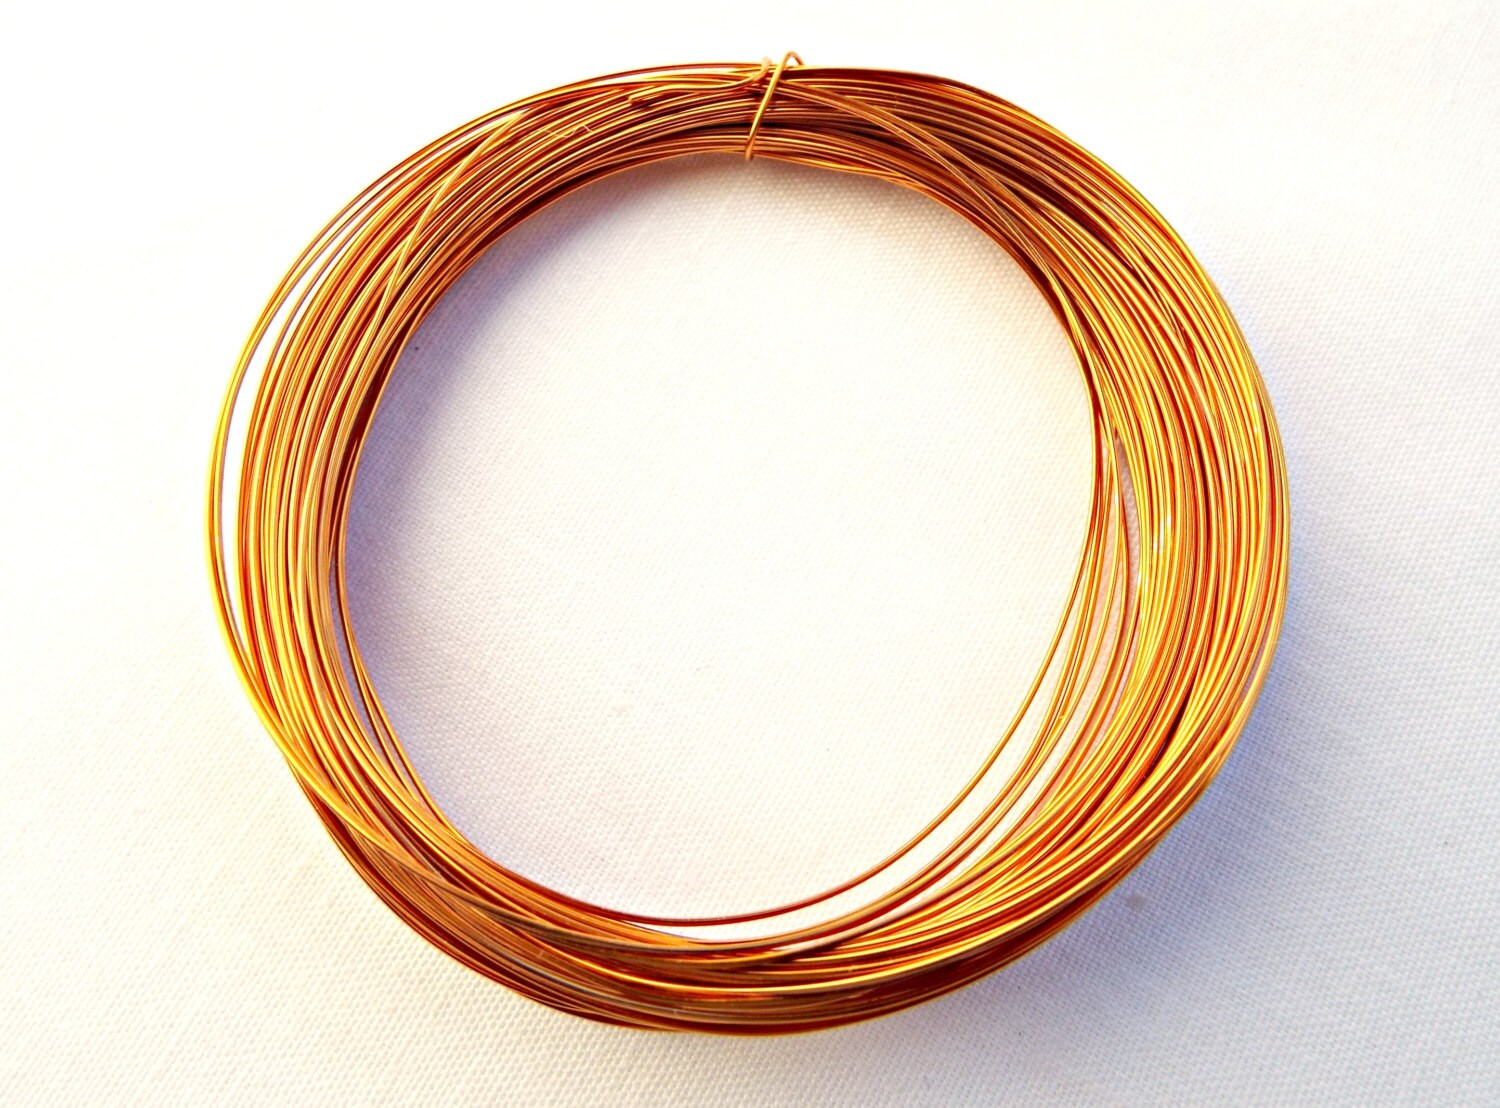 Gold Copper Wire, Light Gold Wire, Wire Wrapping, Gold Craft Wire ...